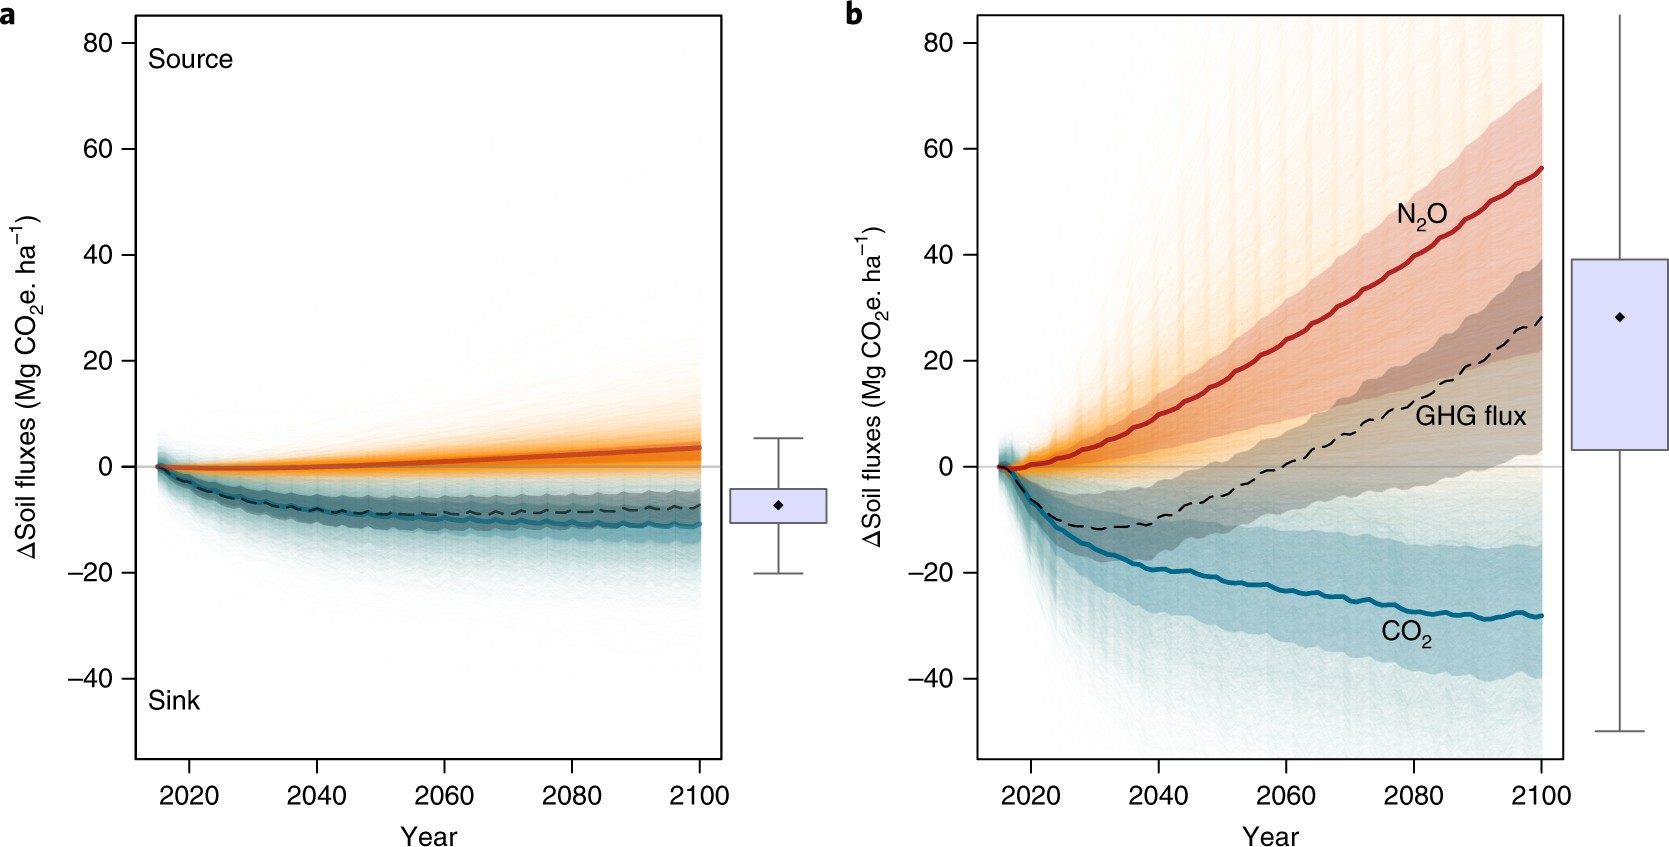 Mitigation potential of soil carbon management overestimated by